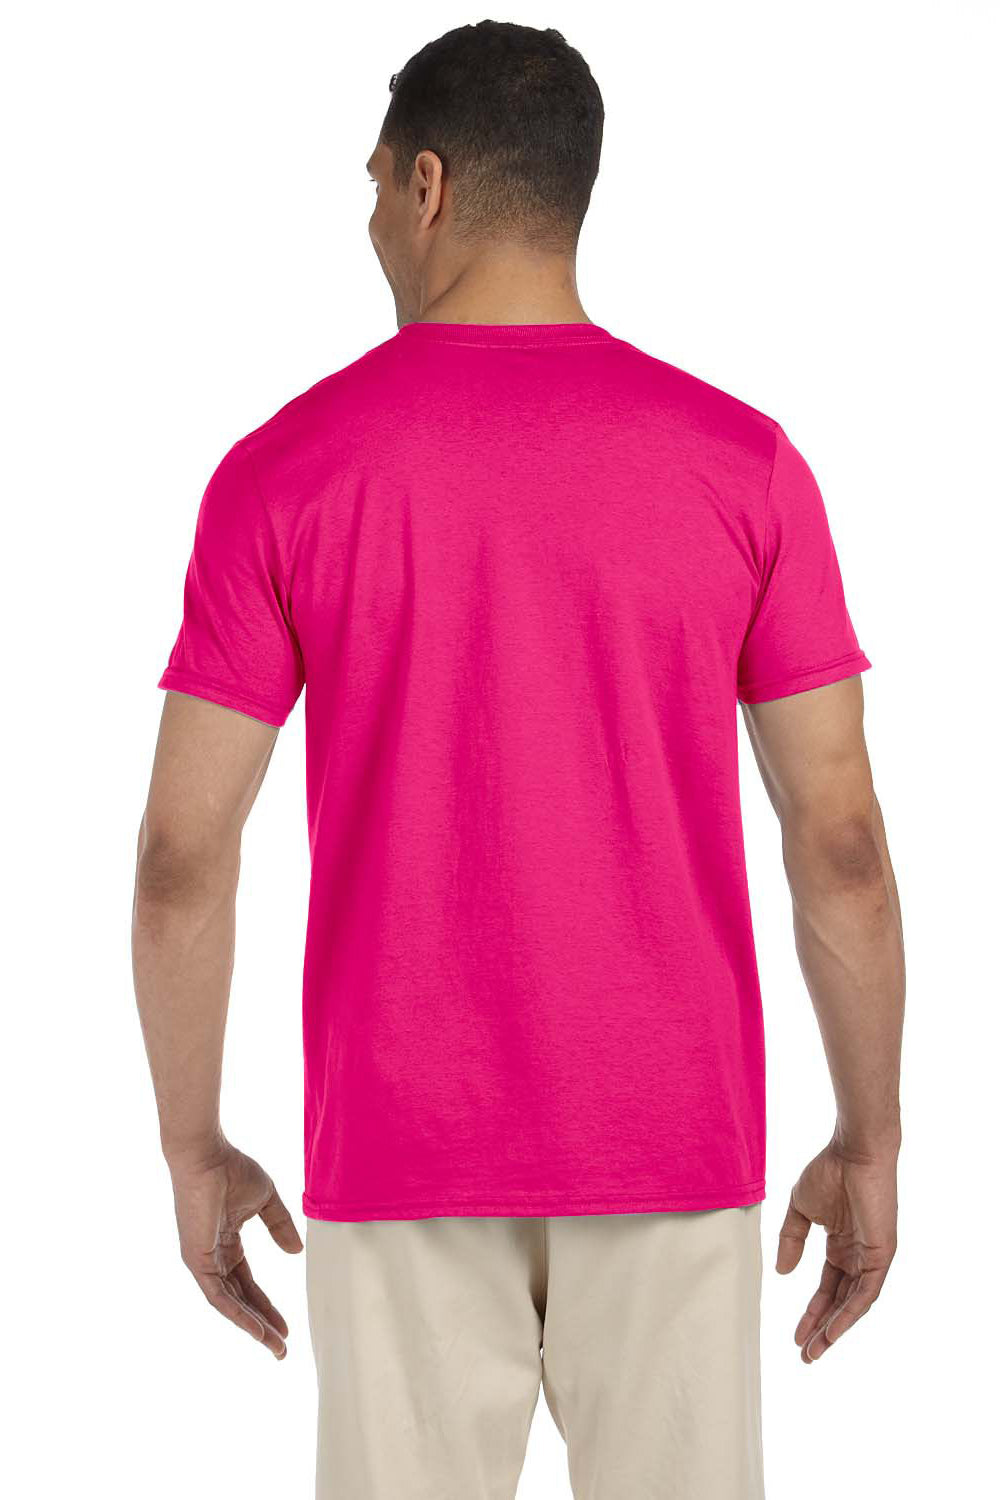 Gildan G640 Mens Softstyle Short Sleeve Crewneck T-Shirt Antique Heliconia Pink Back